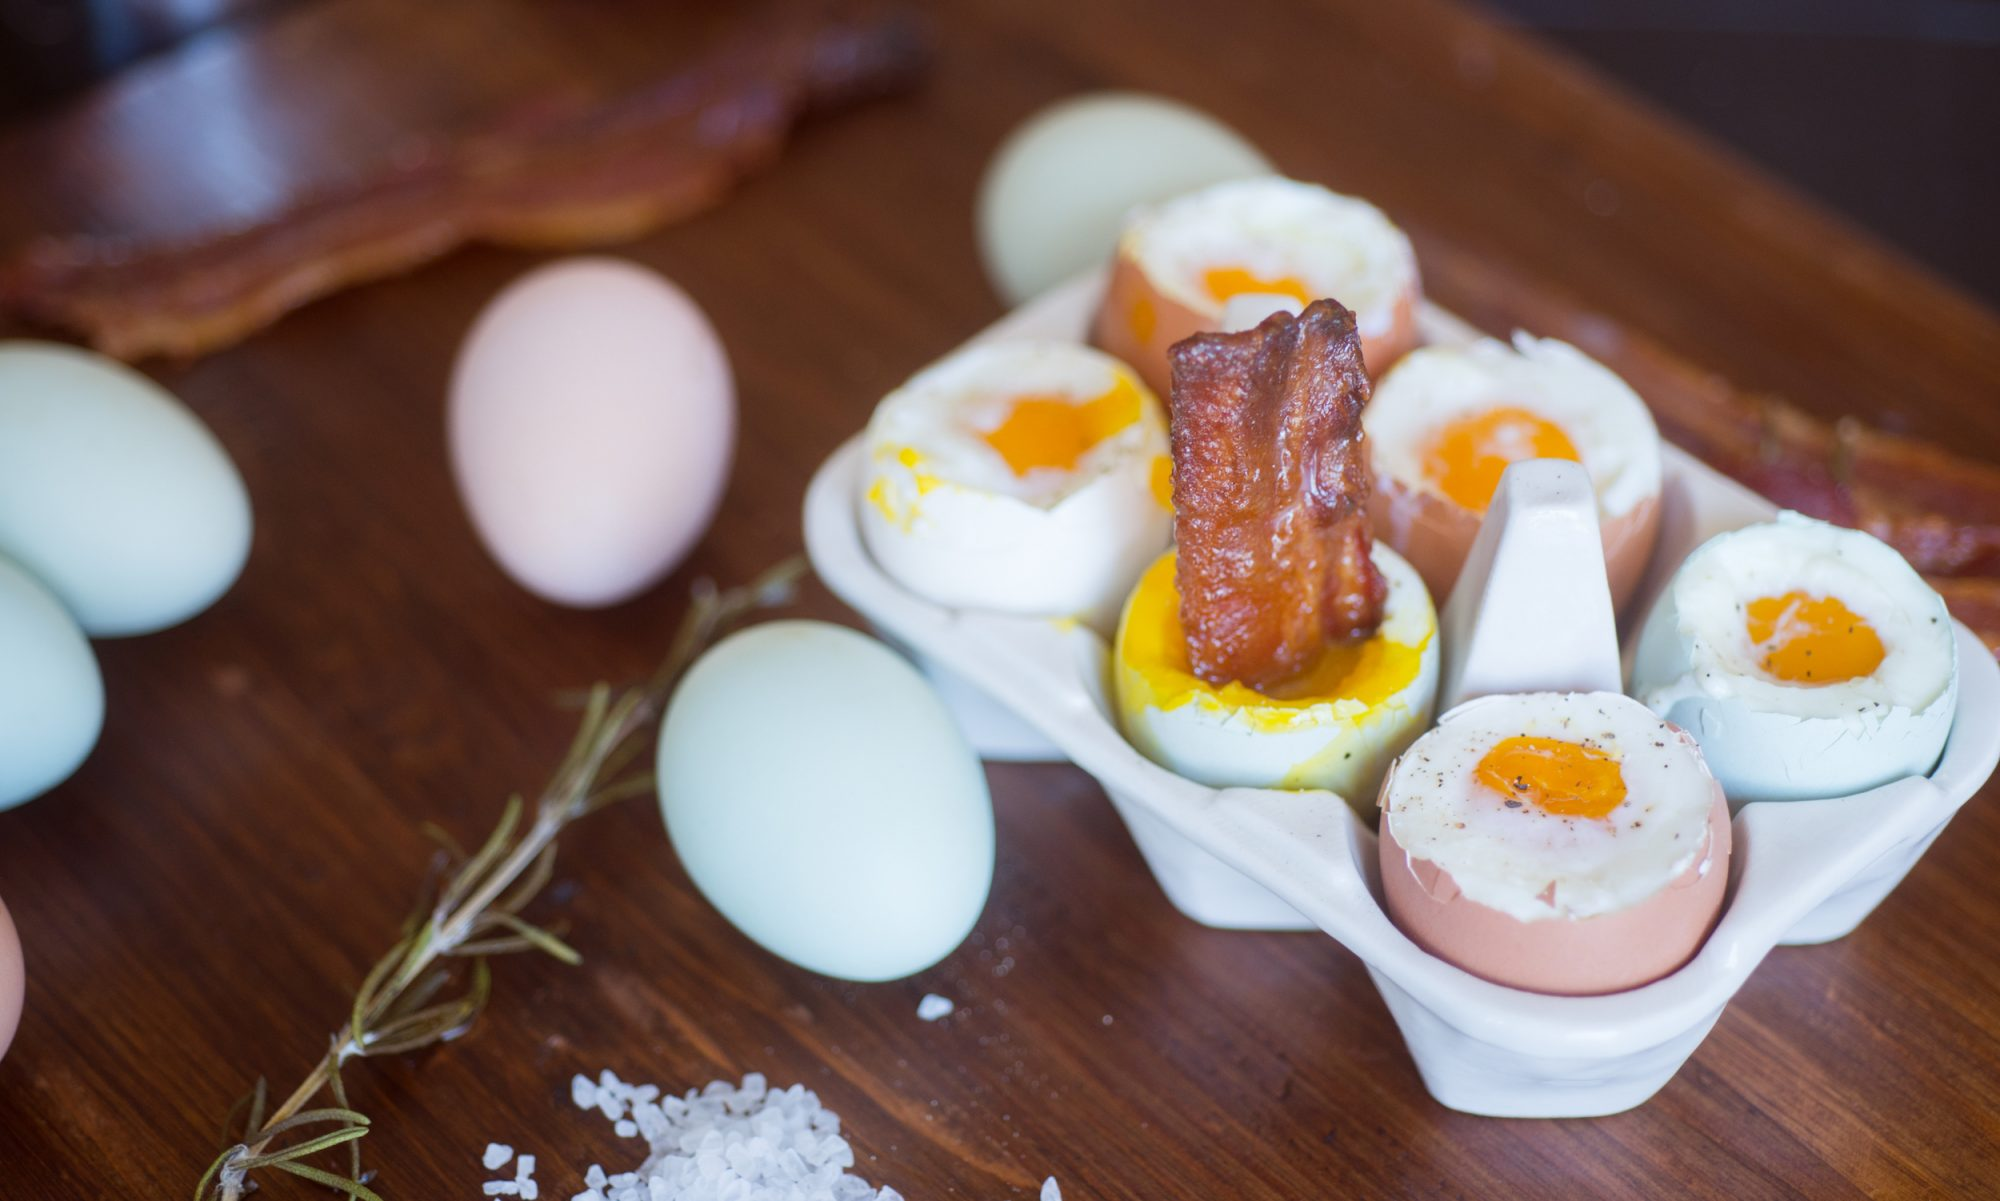 EC: Candied Bacon with Soft-Boiled Eggs Is a New Way to Make Your Favorite Breakfast